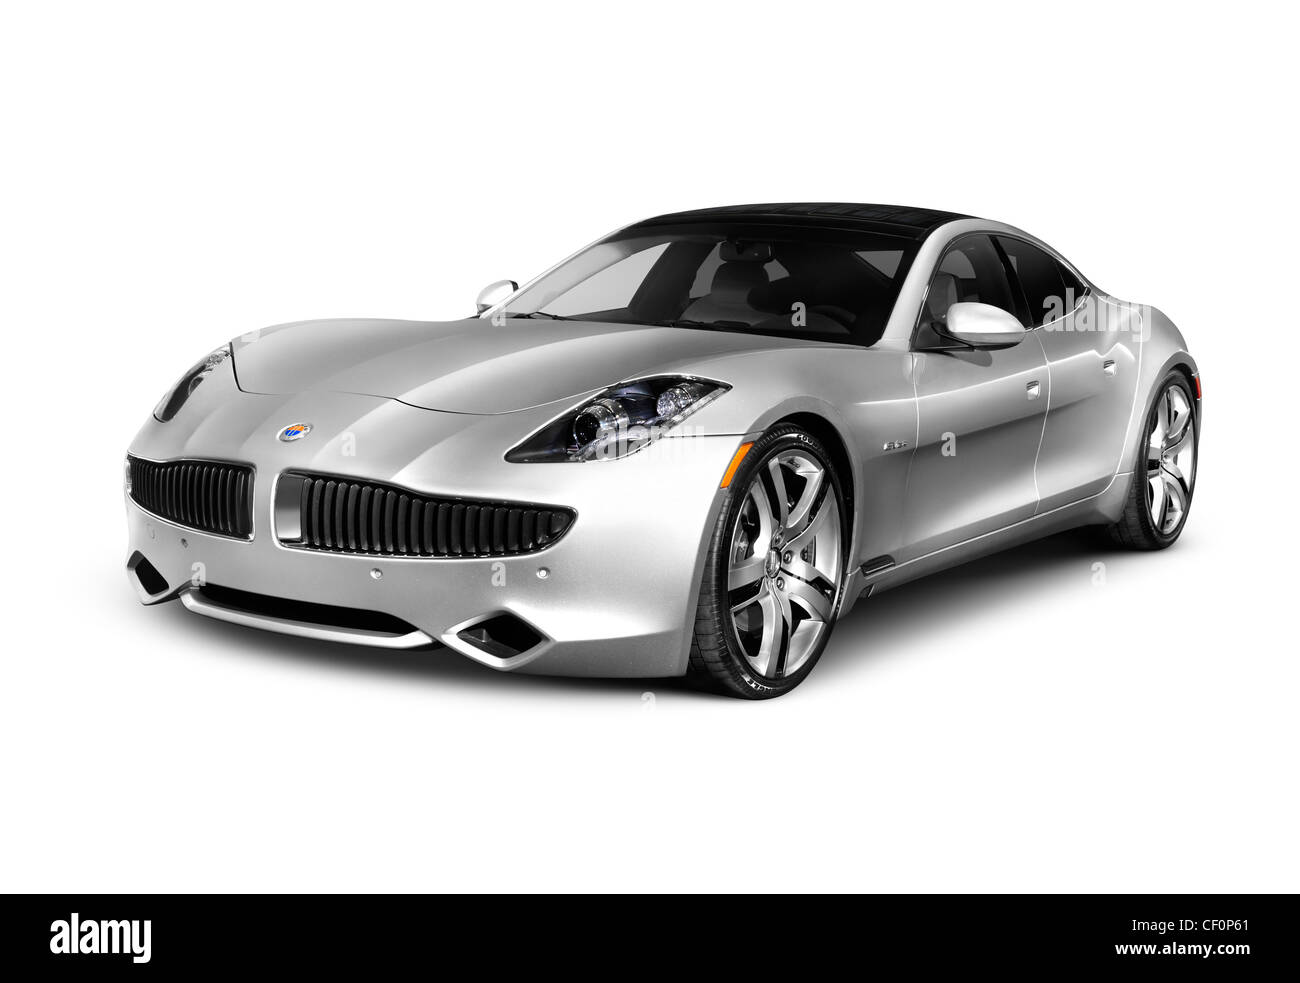 2012 fisker karma plug in hybrid sedan electric luxury car isolated stock photo royalty free. Black Bedroom Furniture Sets. Home Design Ideas